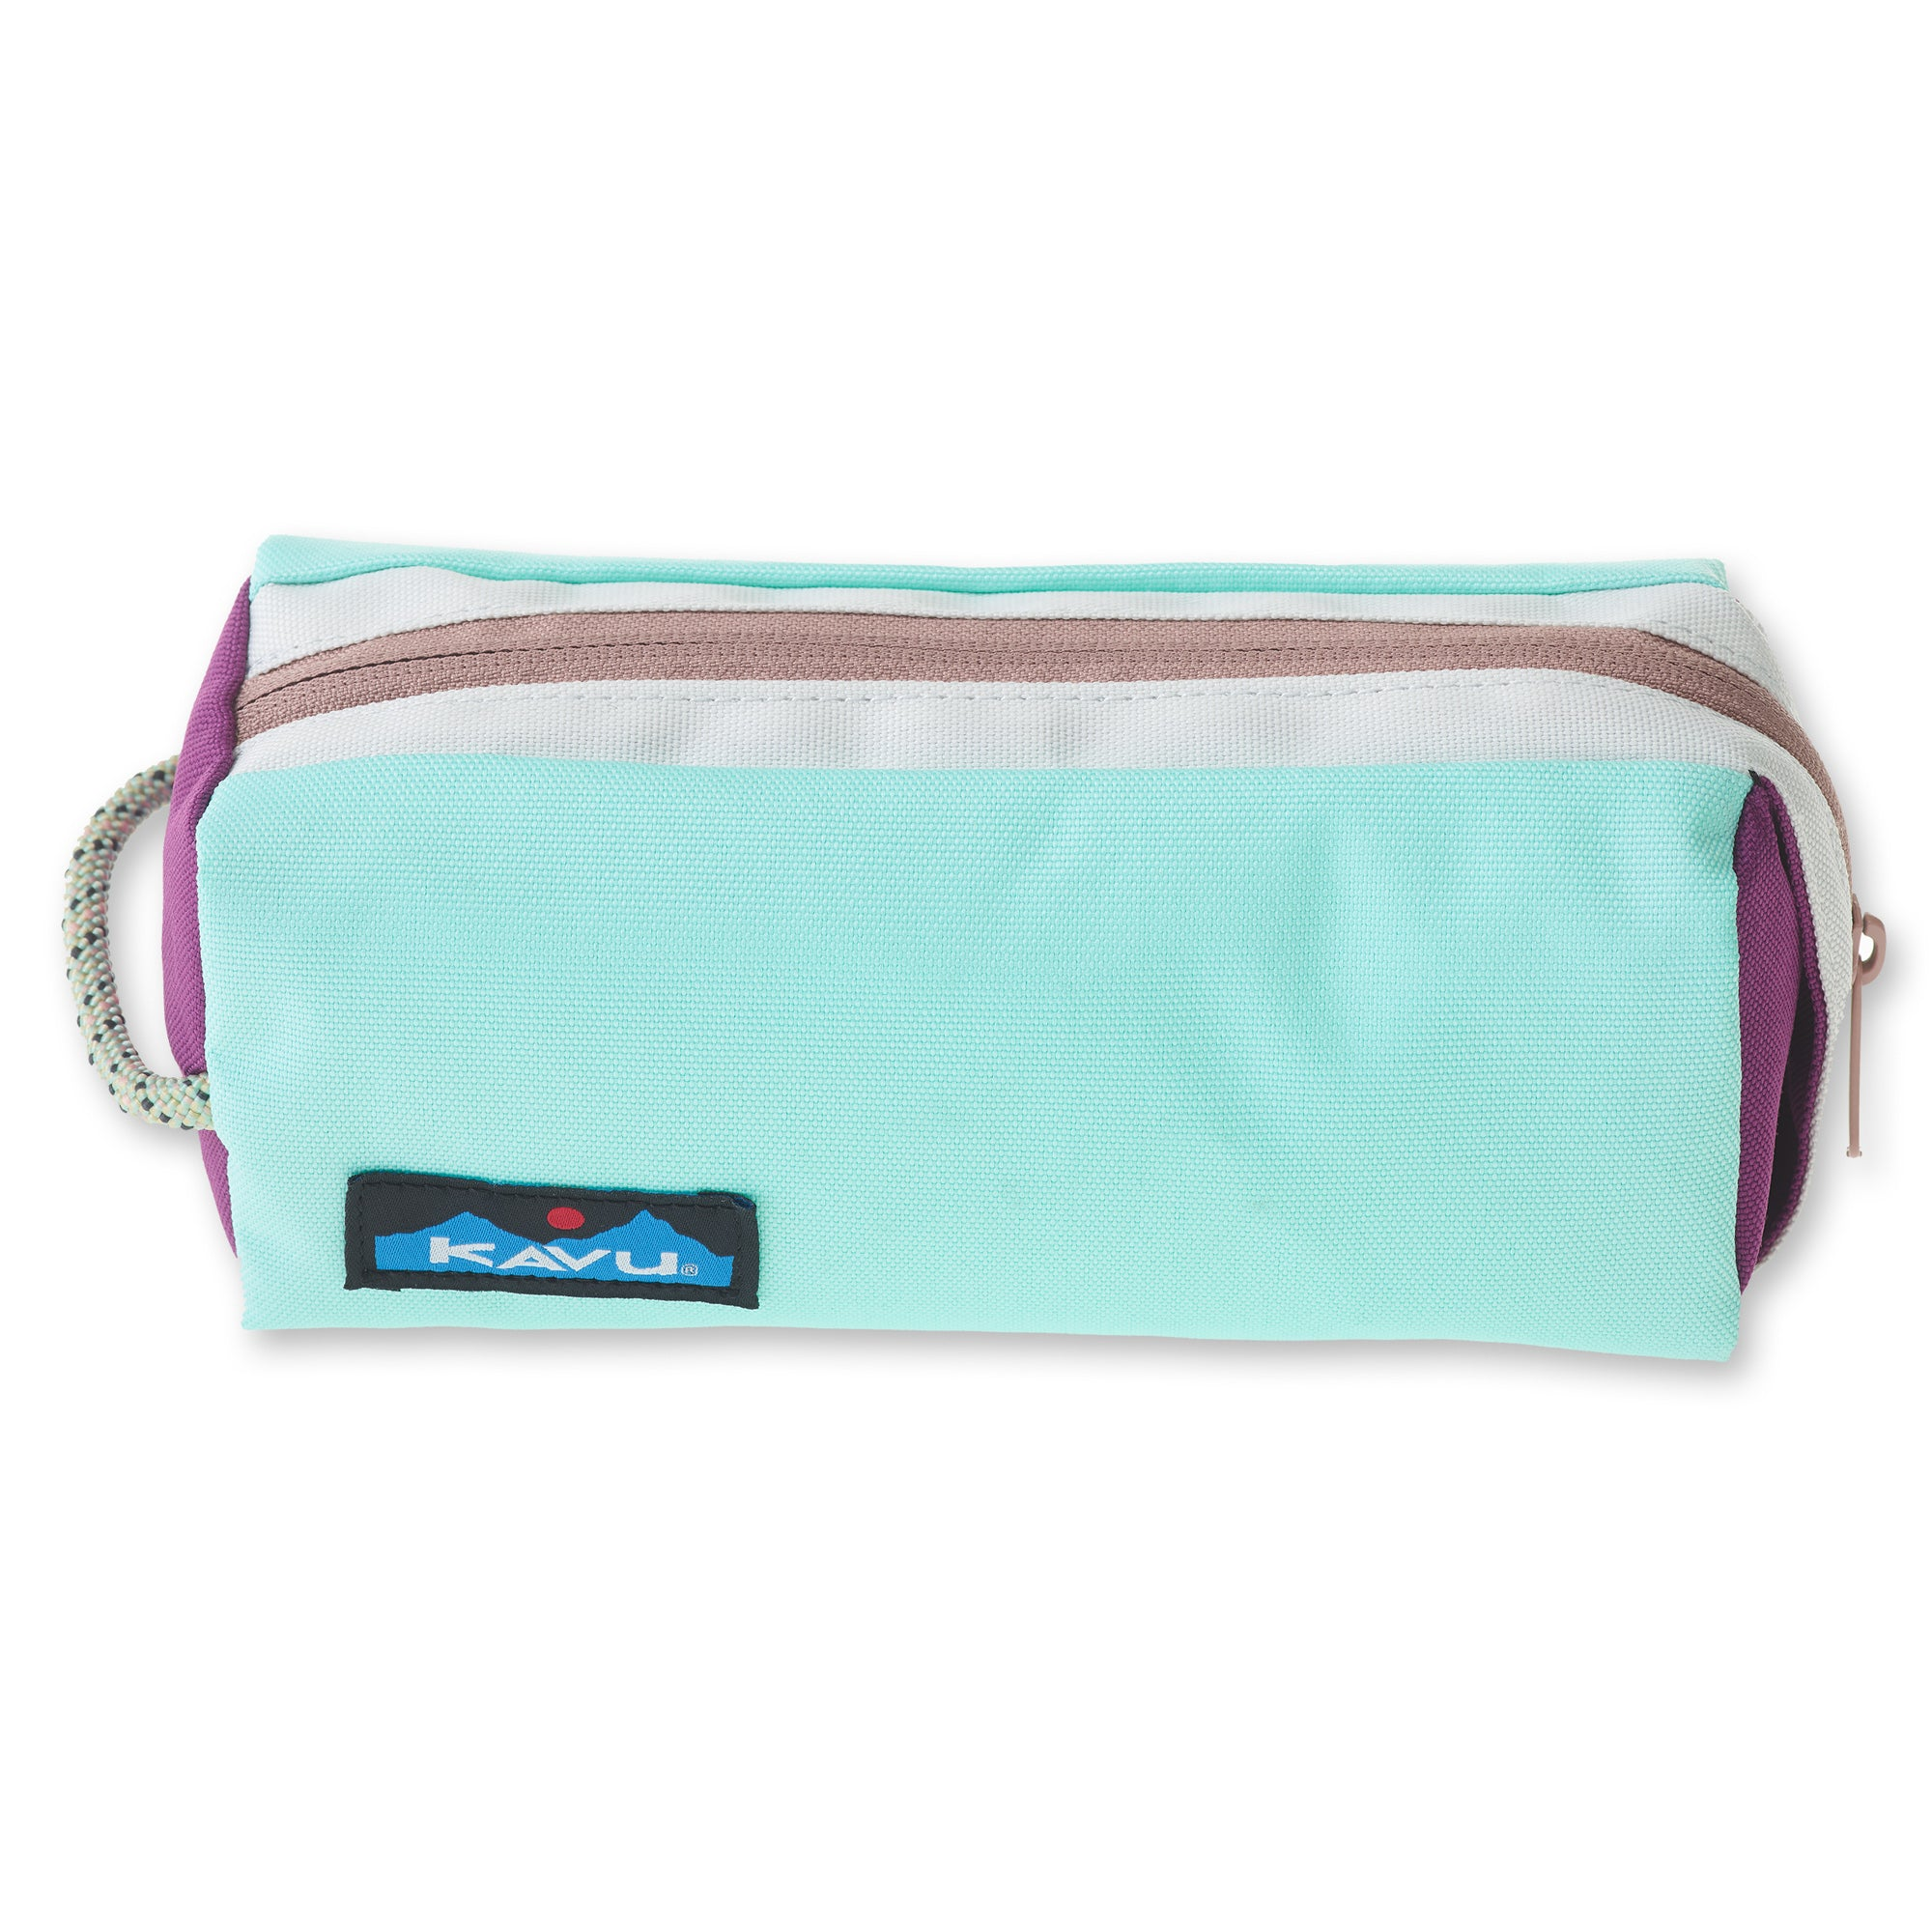 KAVU Pixie Pouch - Final Sale